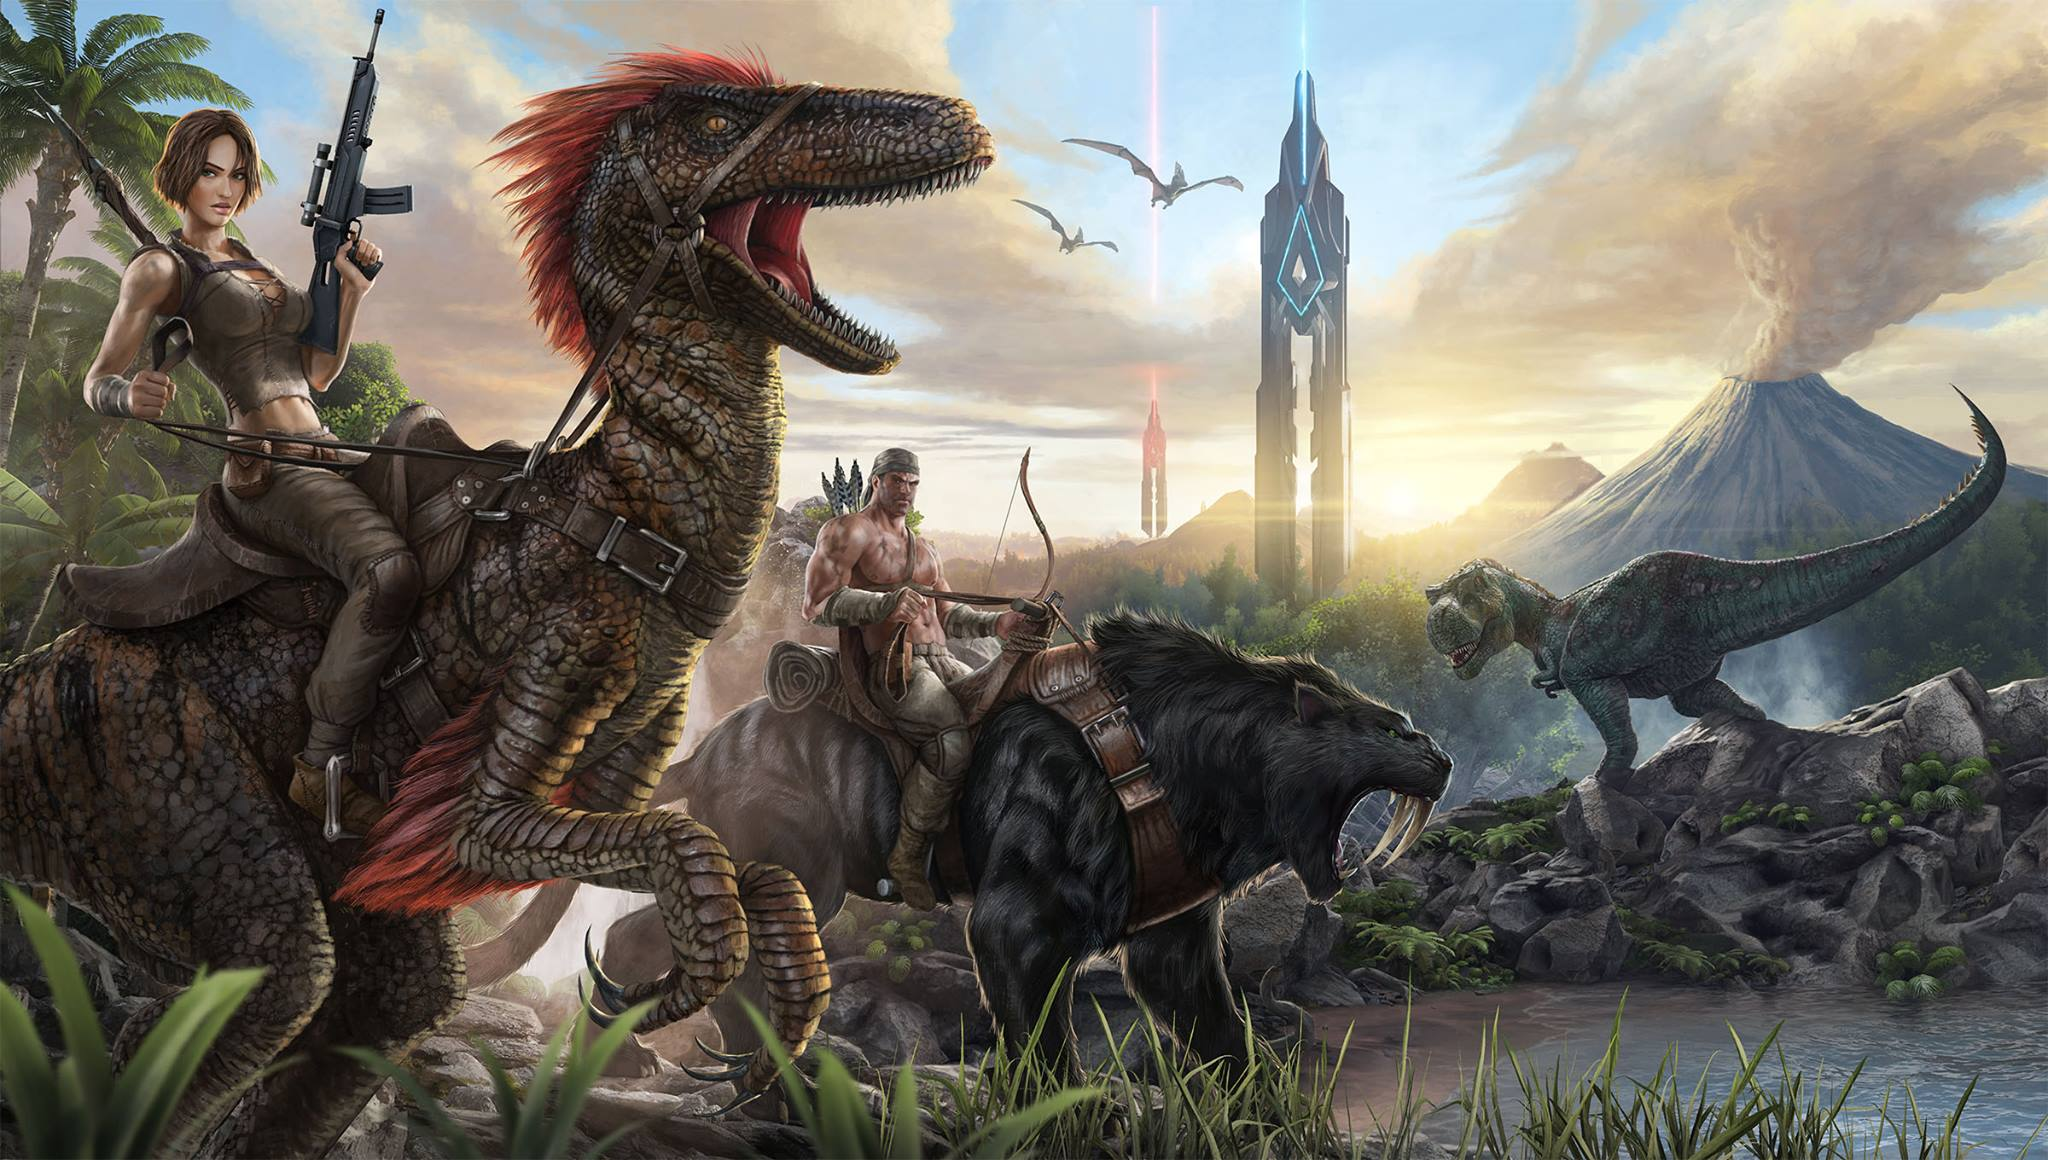 """ARK: Survival Evolved"" Is Bringing Dinosaurs Back - Along with ... Other Things"